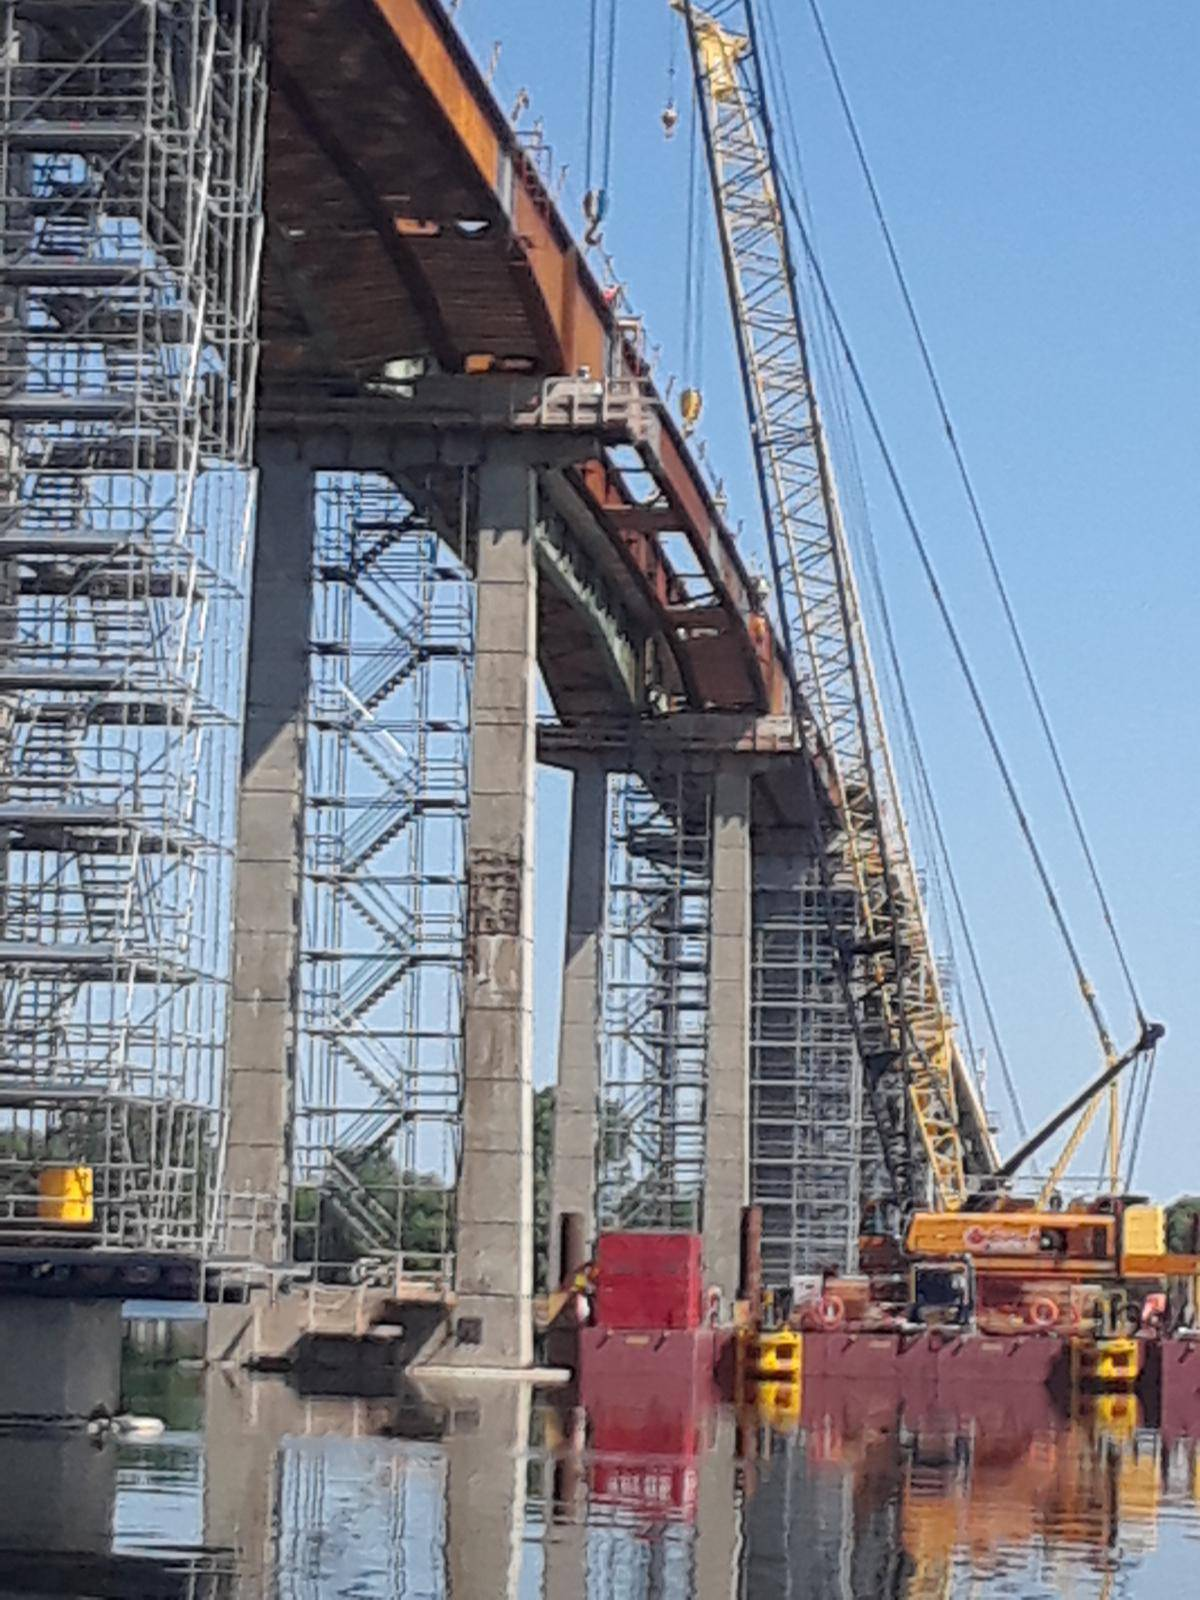 Girder section secured in-place